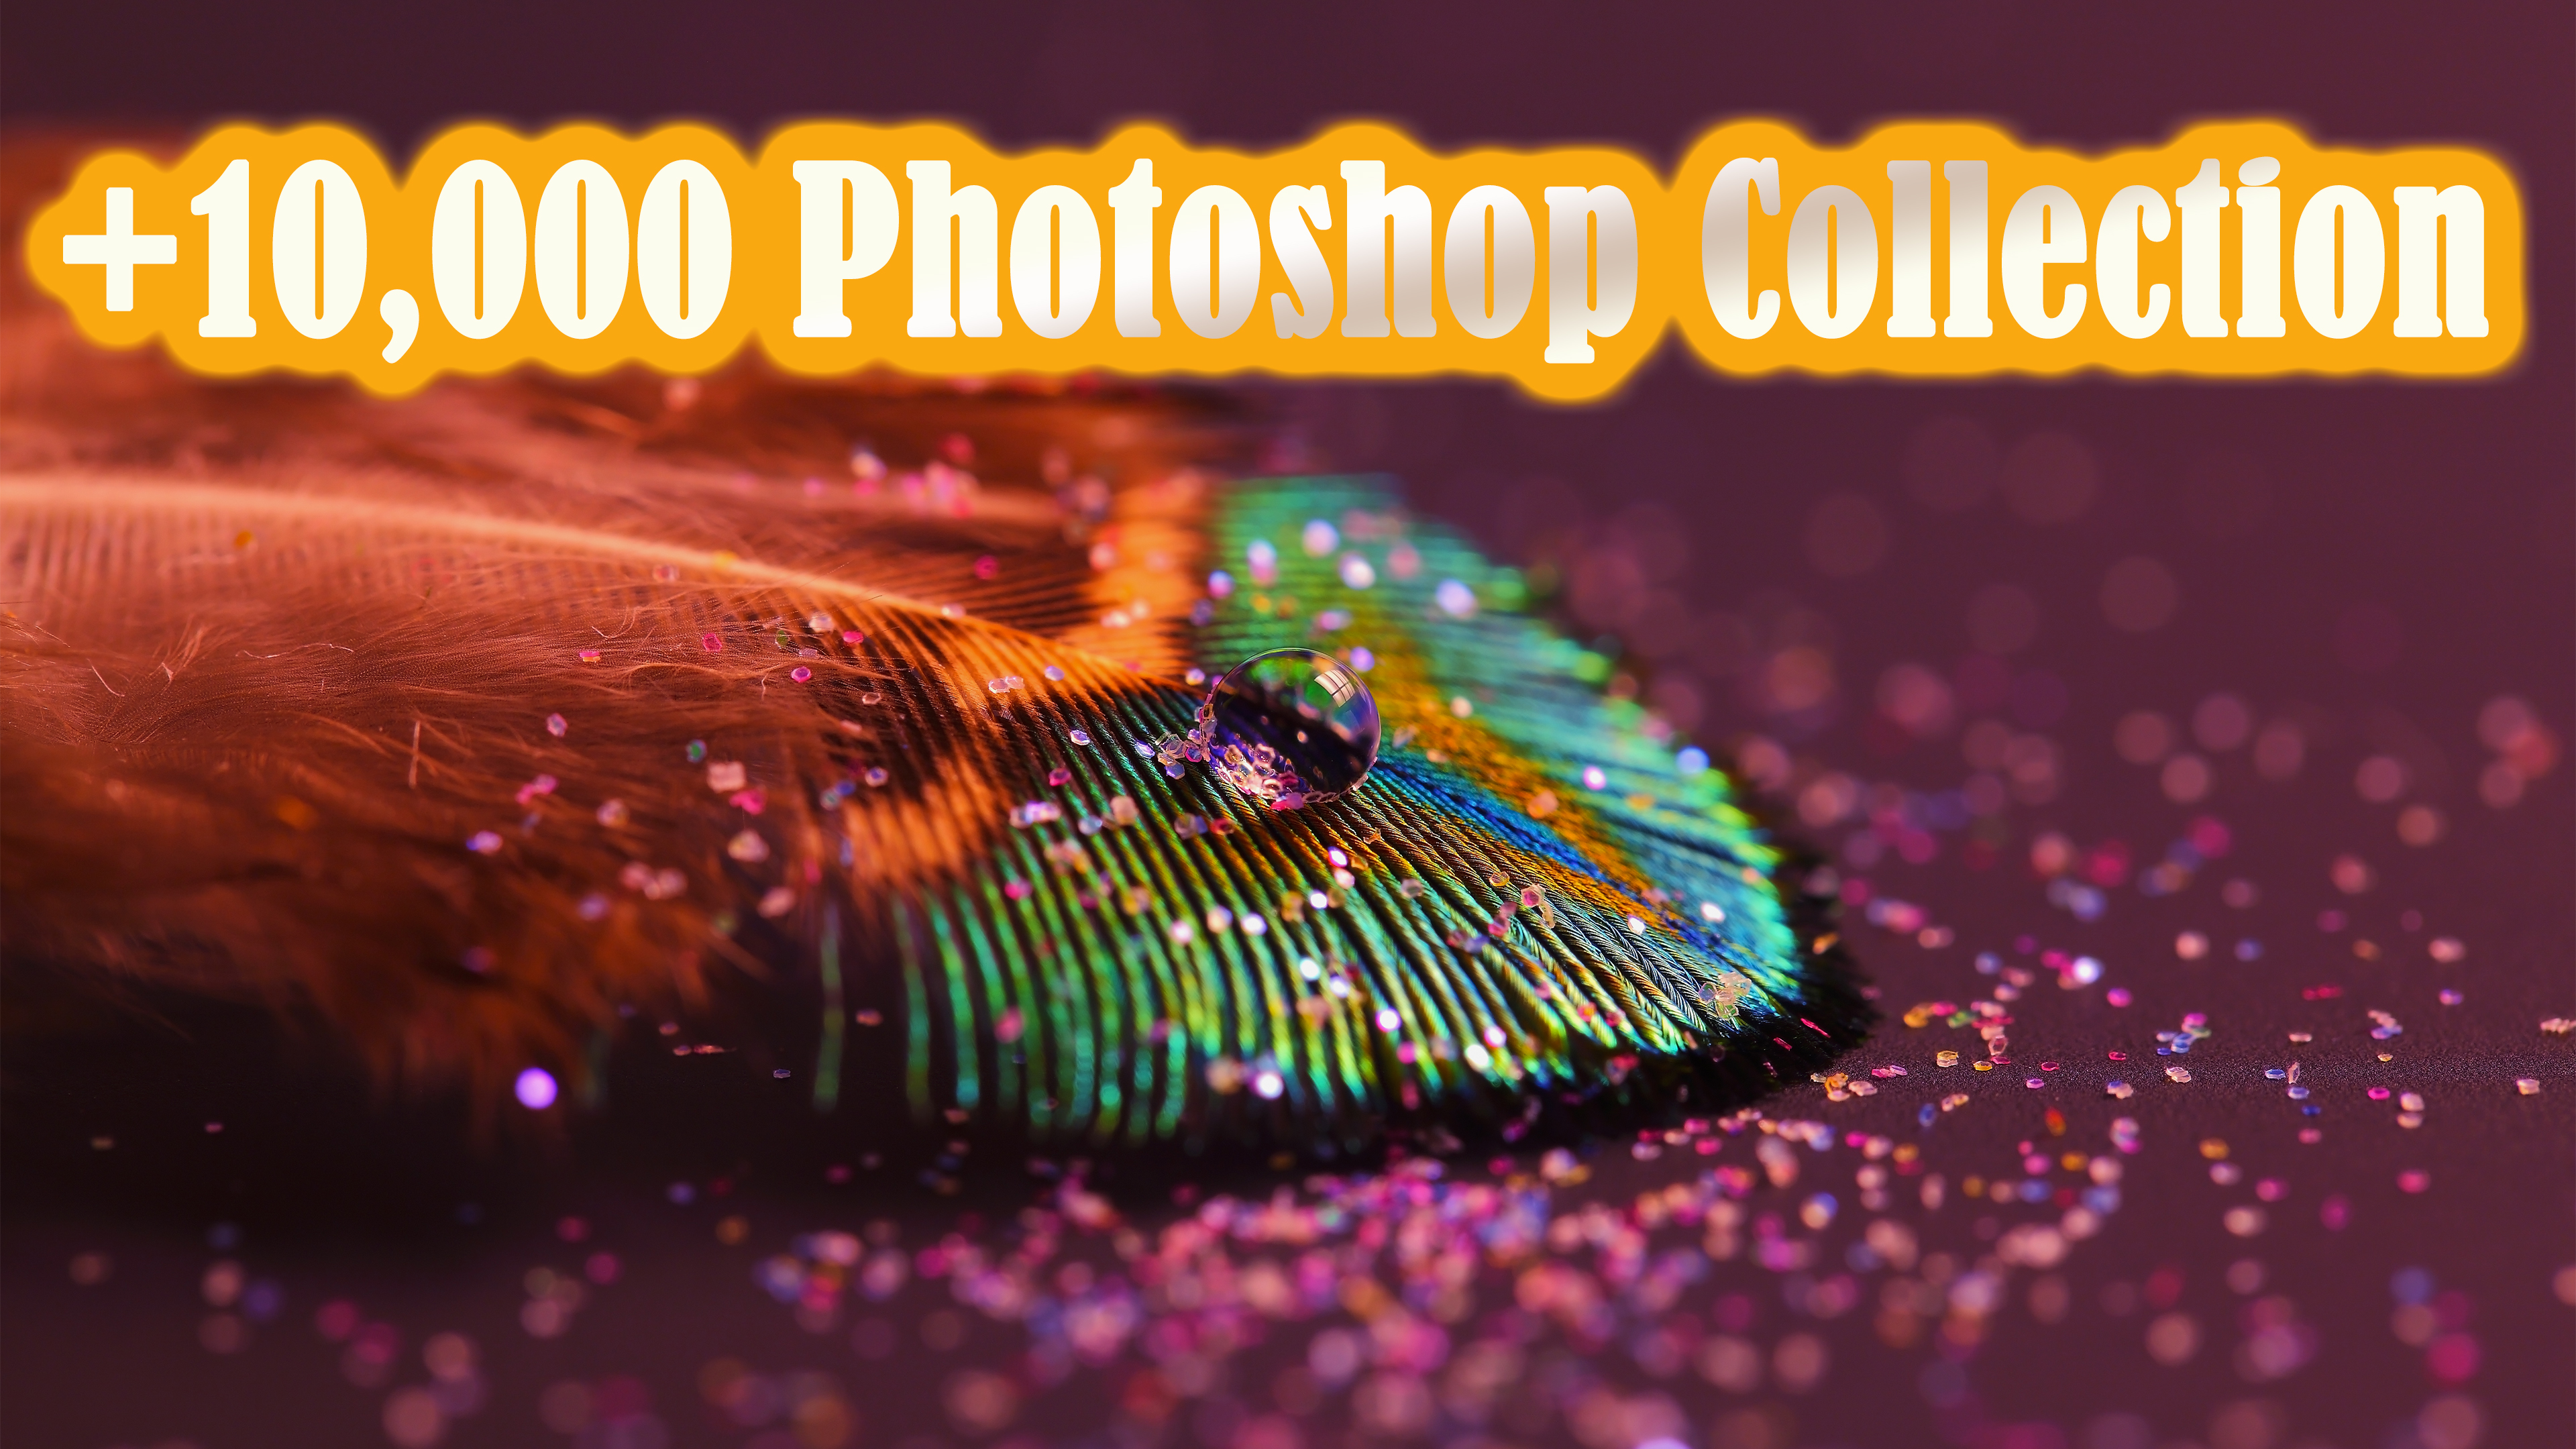 +10.000 Photoshop Collection, Gradients Vectors Brushes Shapes Styles Textures Patterns